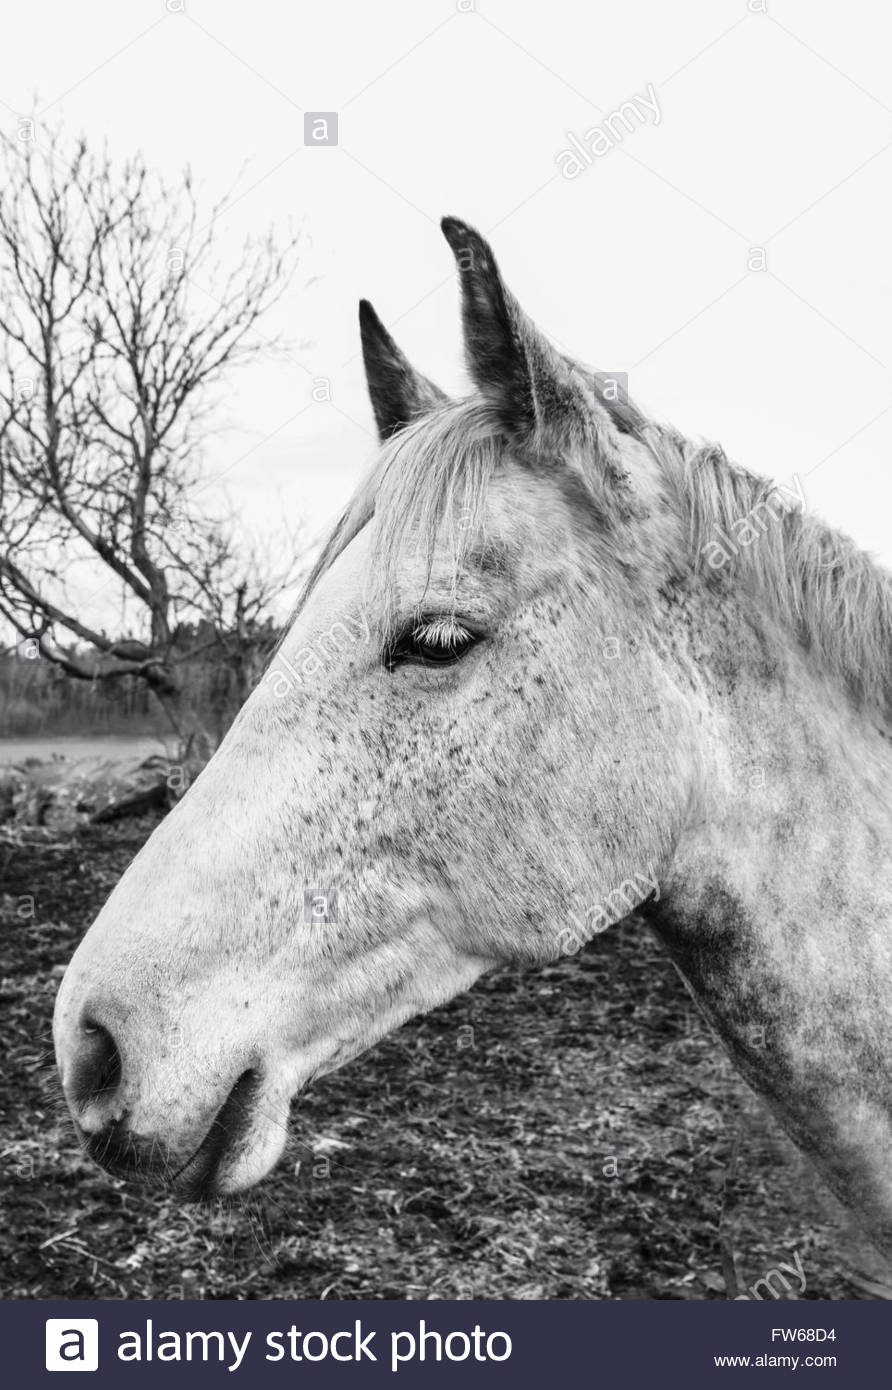 Monochromatic portrait of white/grey horse in profile - Stock Image